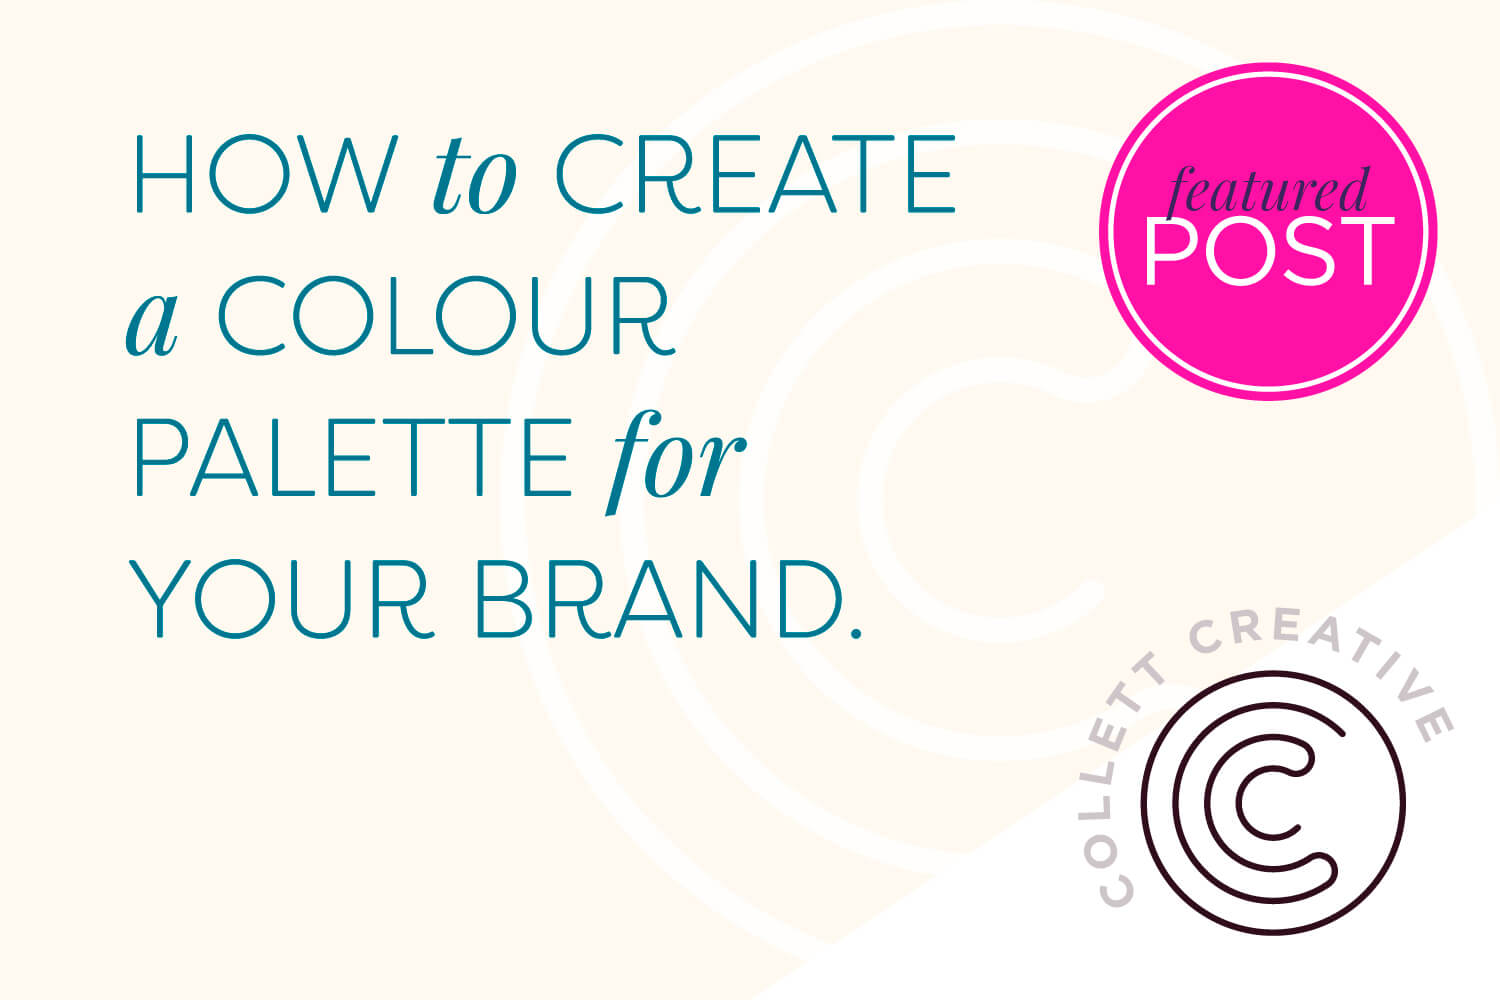 How to create a colour palette for your brand.